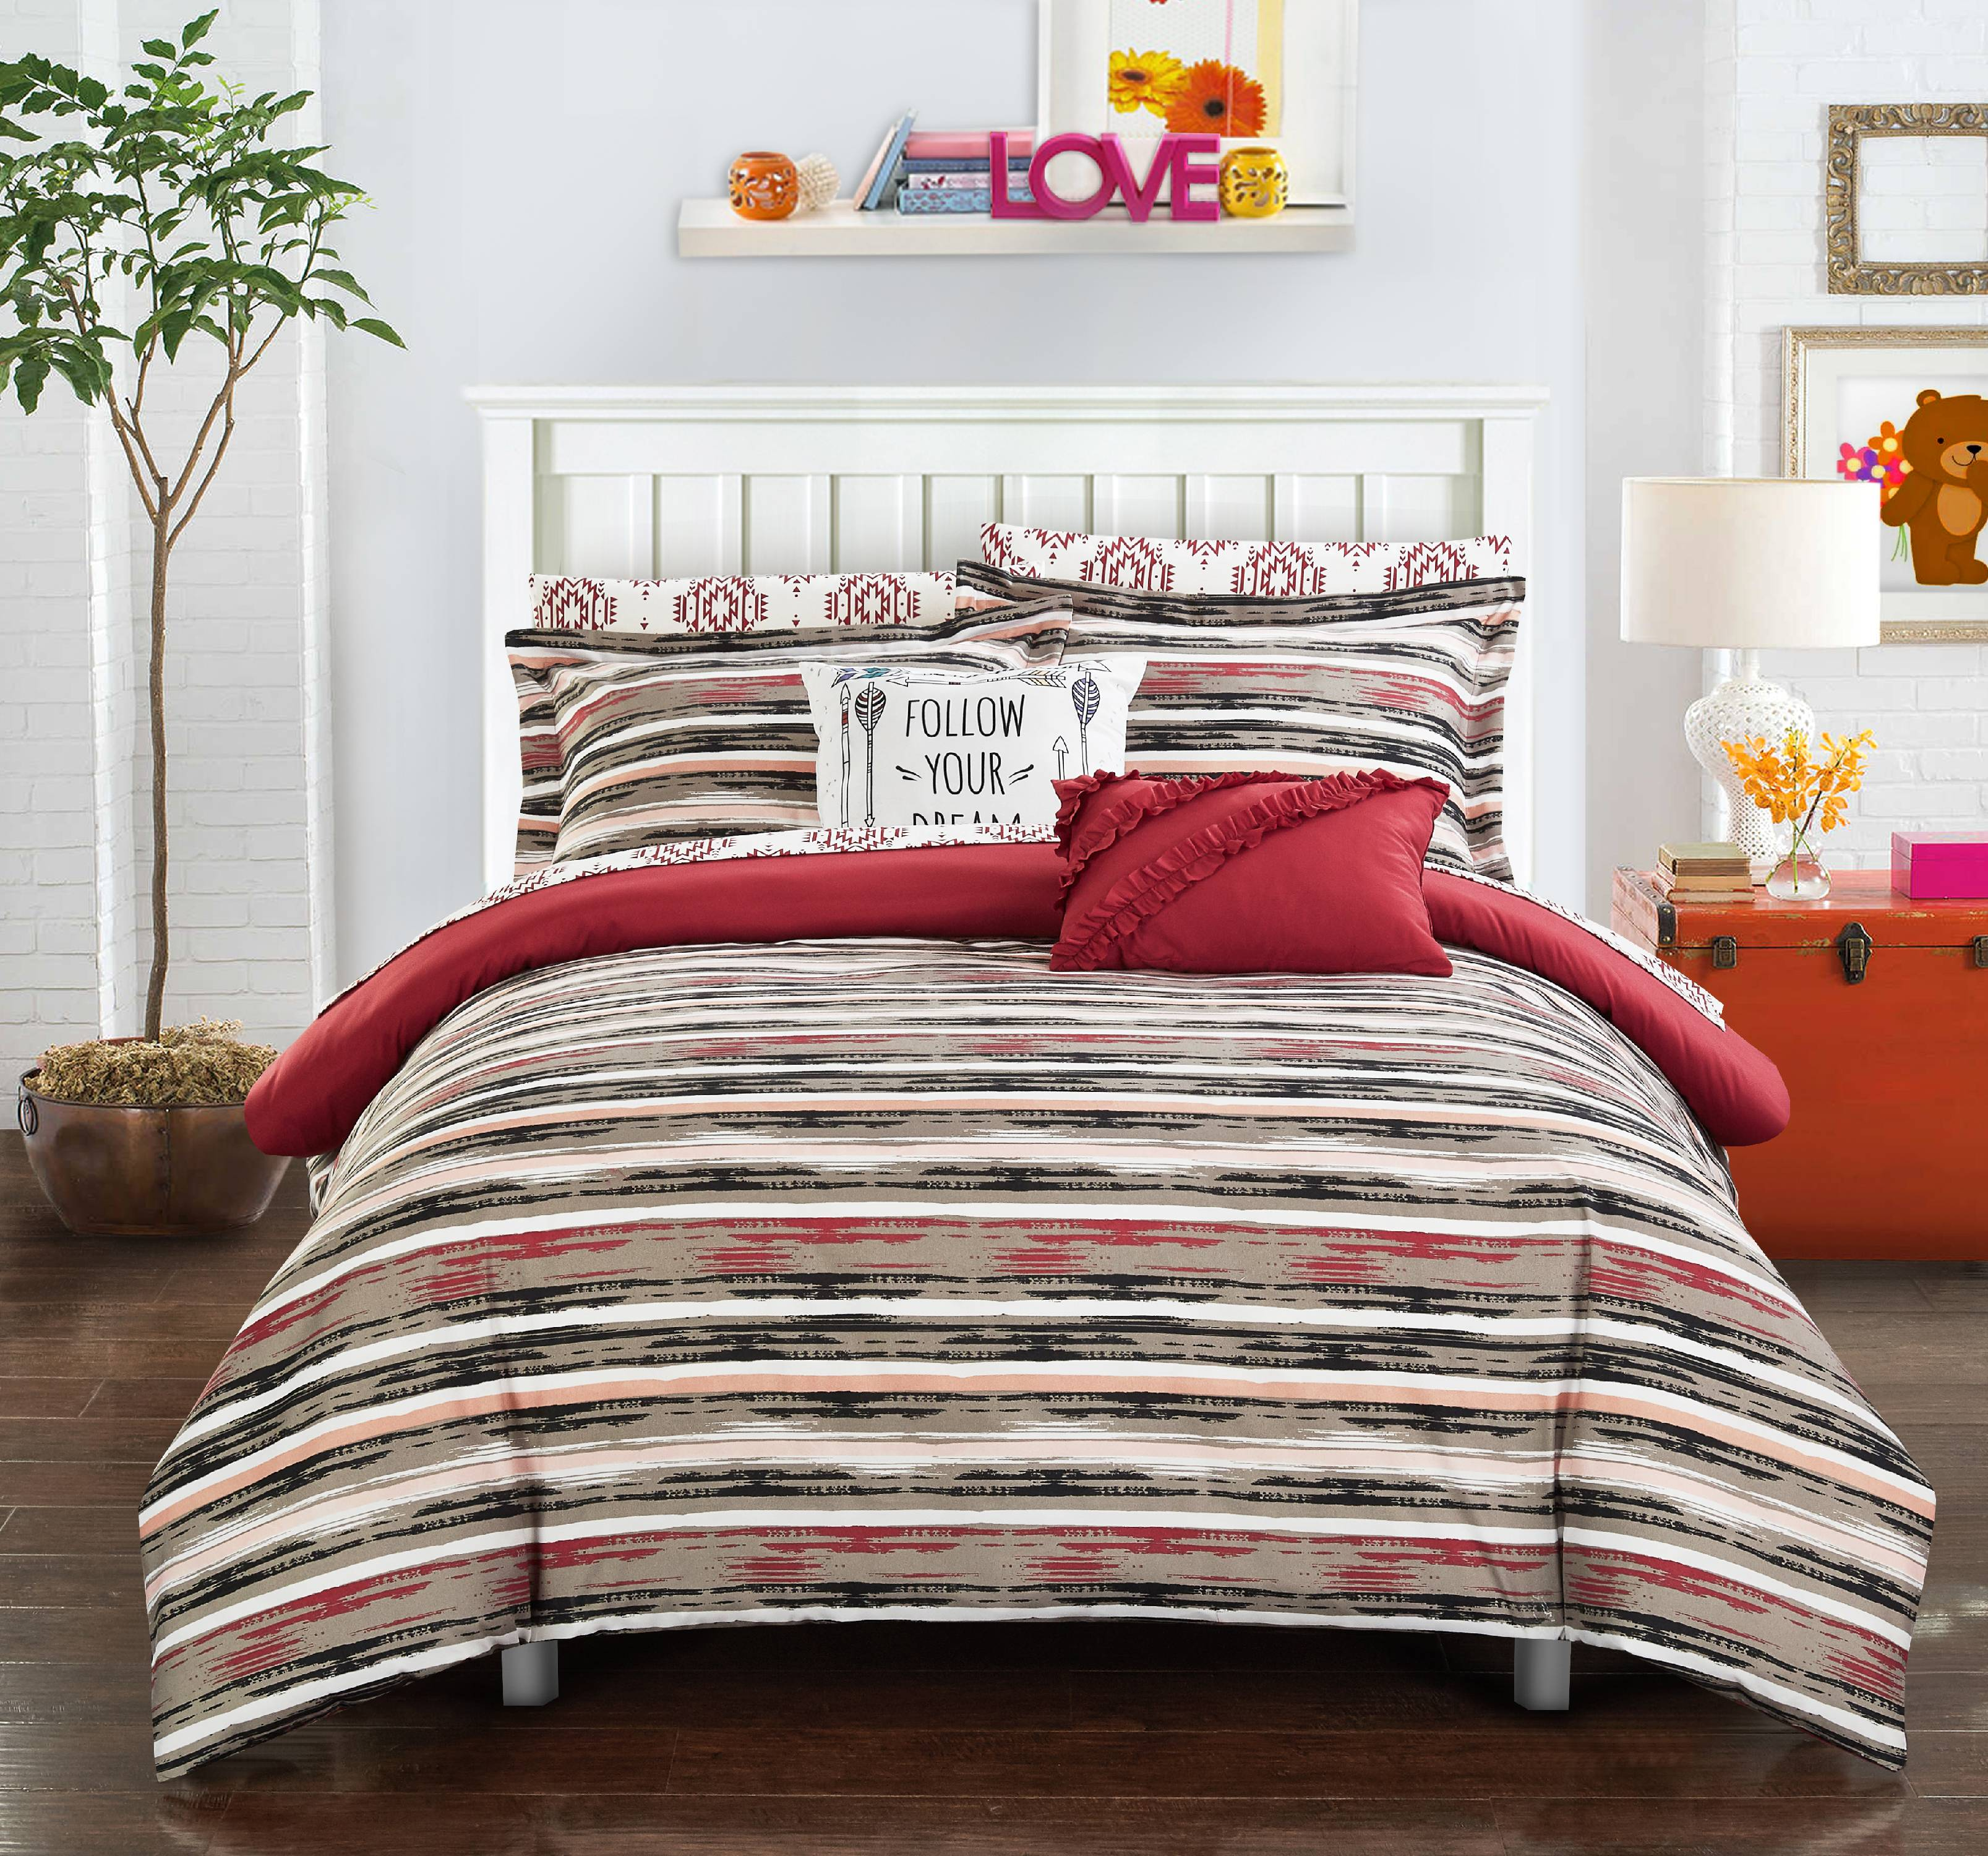 Chic Home Marisol 9 Piece Reversible Comforter Set Bed in a Bag Contemporary Striped Ikat Pattern Print Bedding with Sheet Set Decorative Pillows Shams Included, Full Brick Red